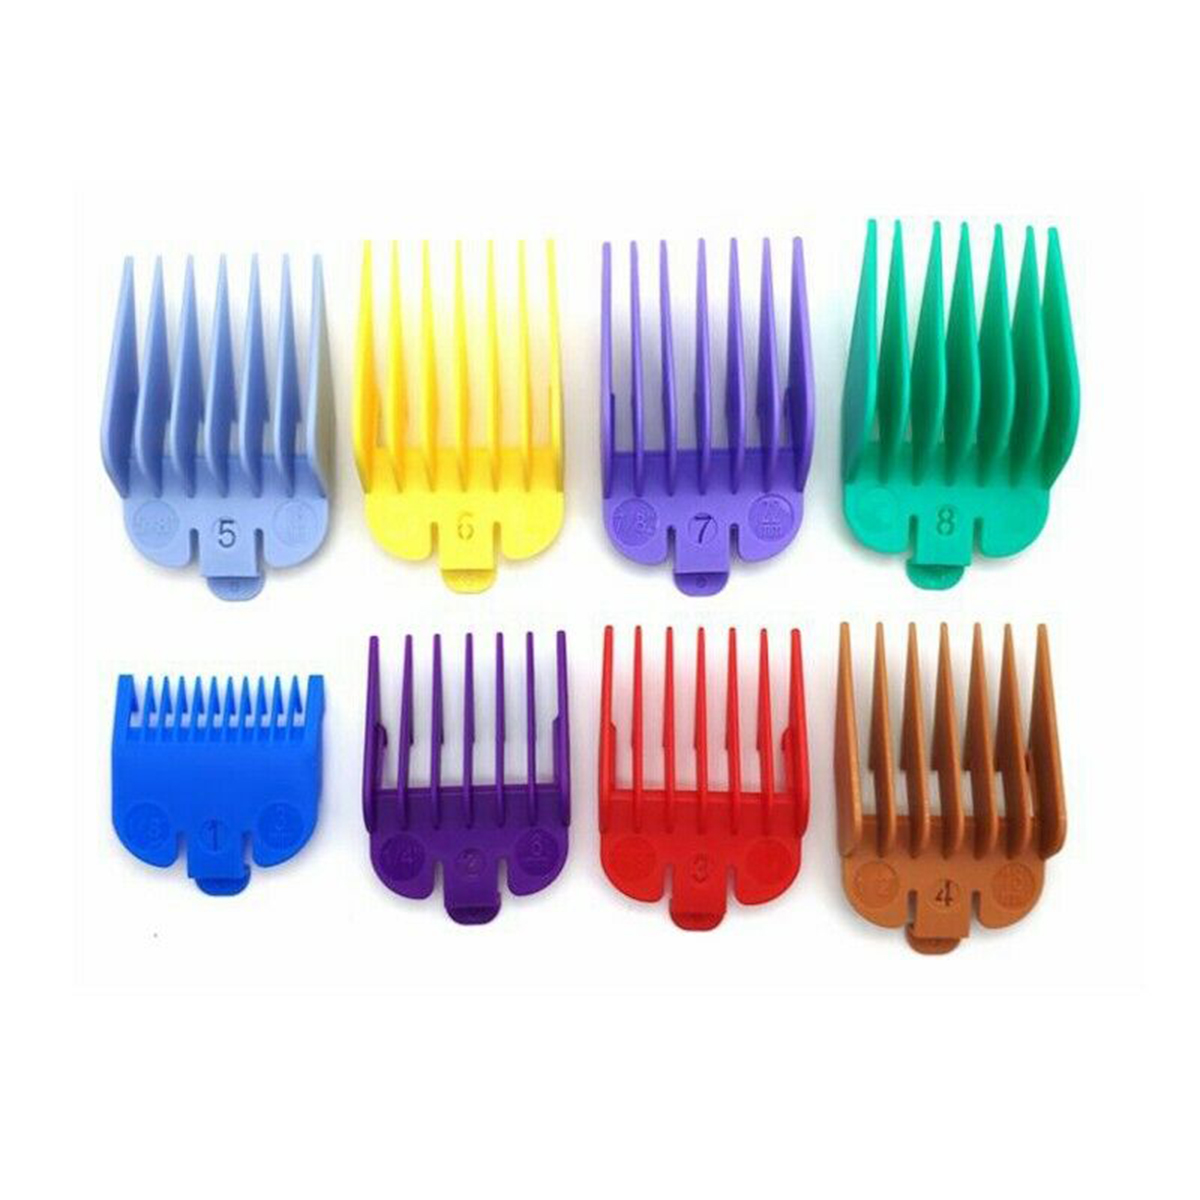 8pcs Cutting Guide Comb Set Limit Combs Attachment Haircut Accessories Hairdressing Tool For Electric Hair Trimmer Shaver